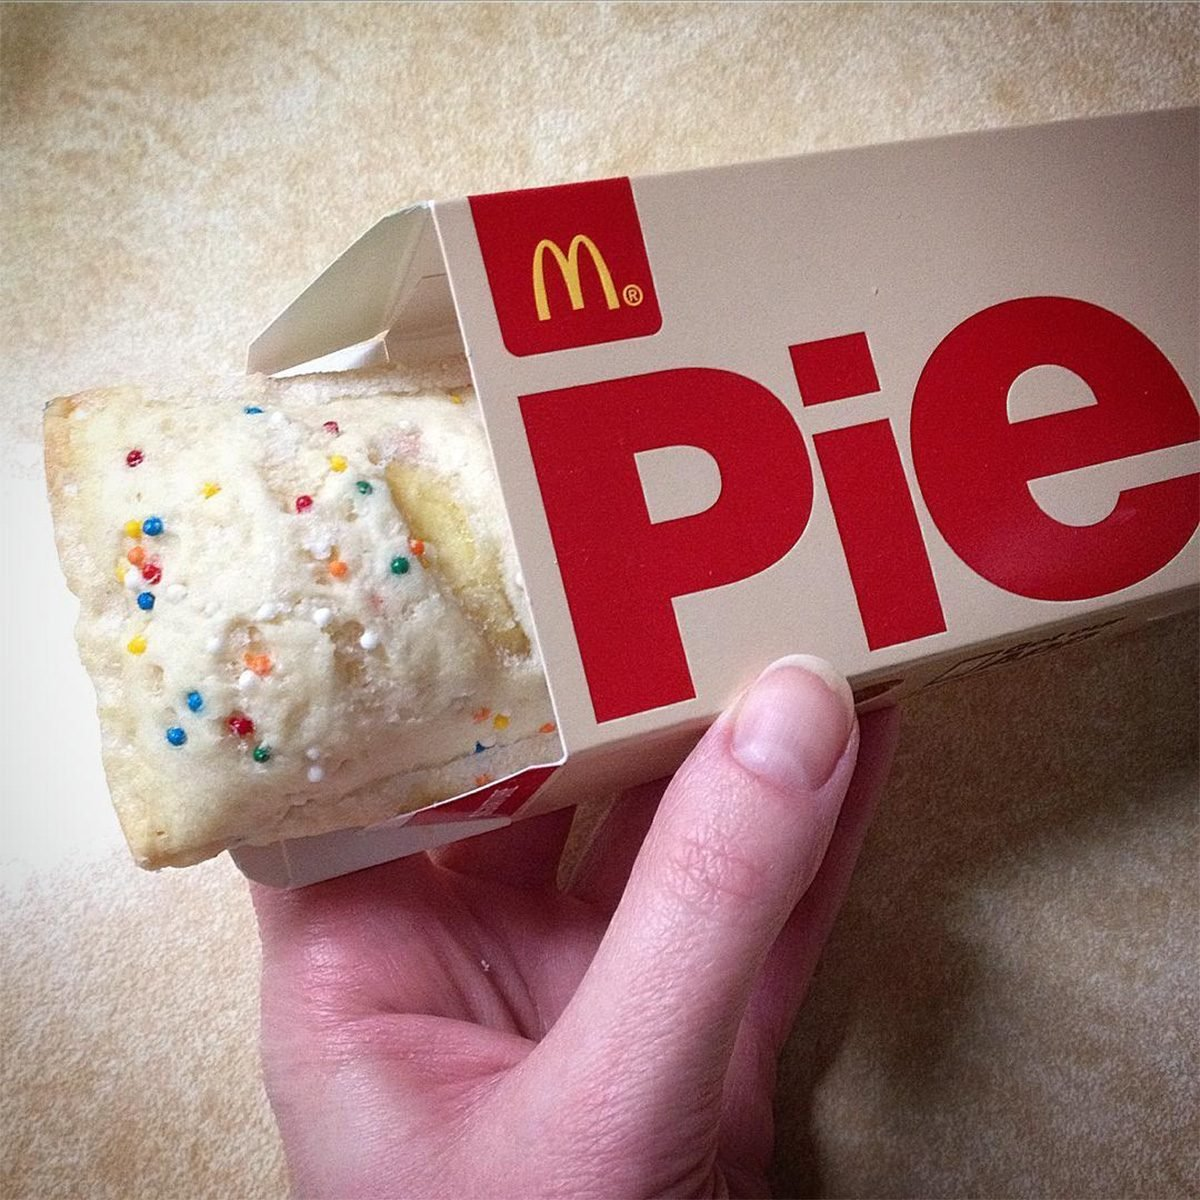 Mcdonalds Christmas Pie 2020 McDonald's Holiday Hand Pies Are Back for the Season | Taste of Home